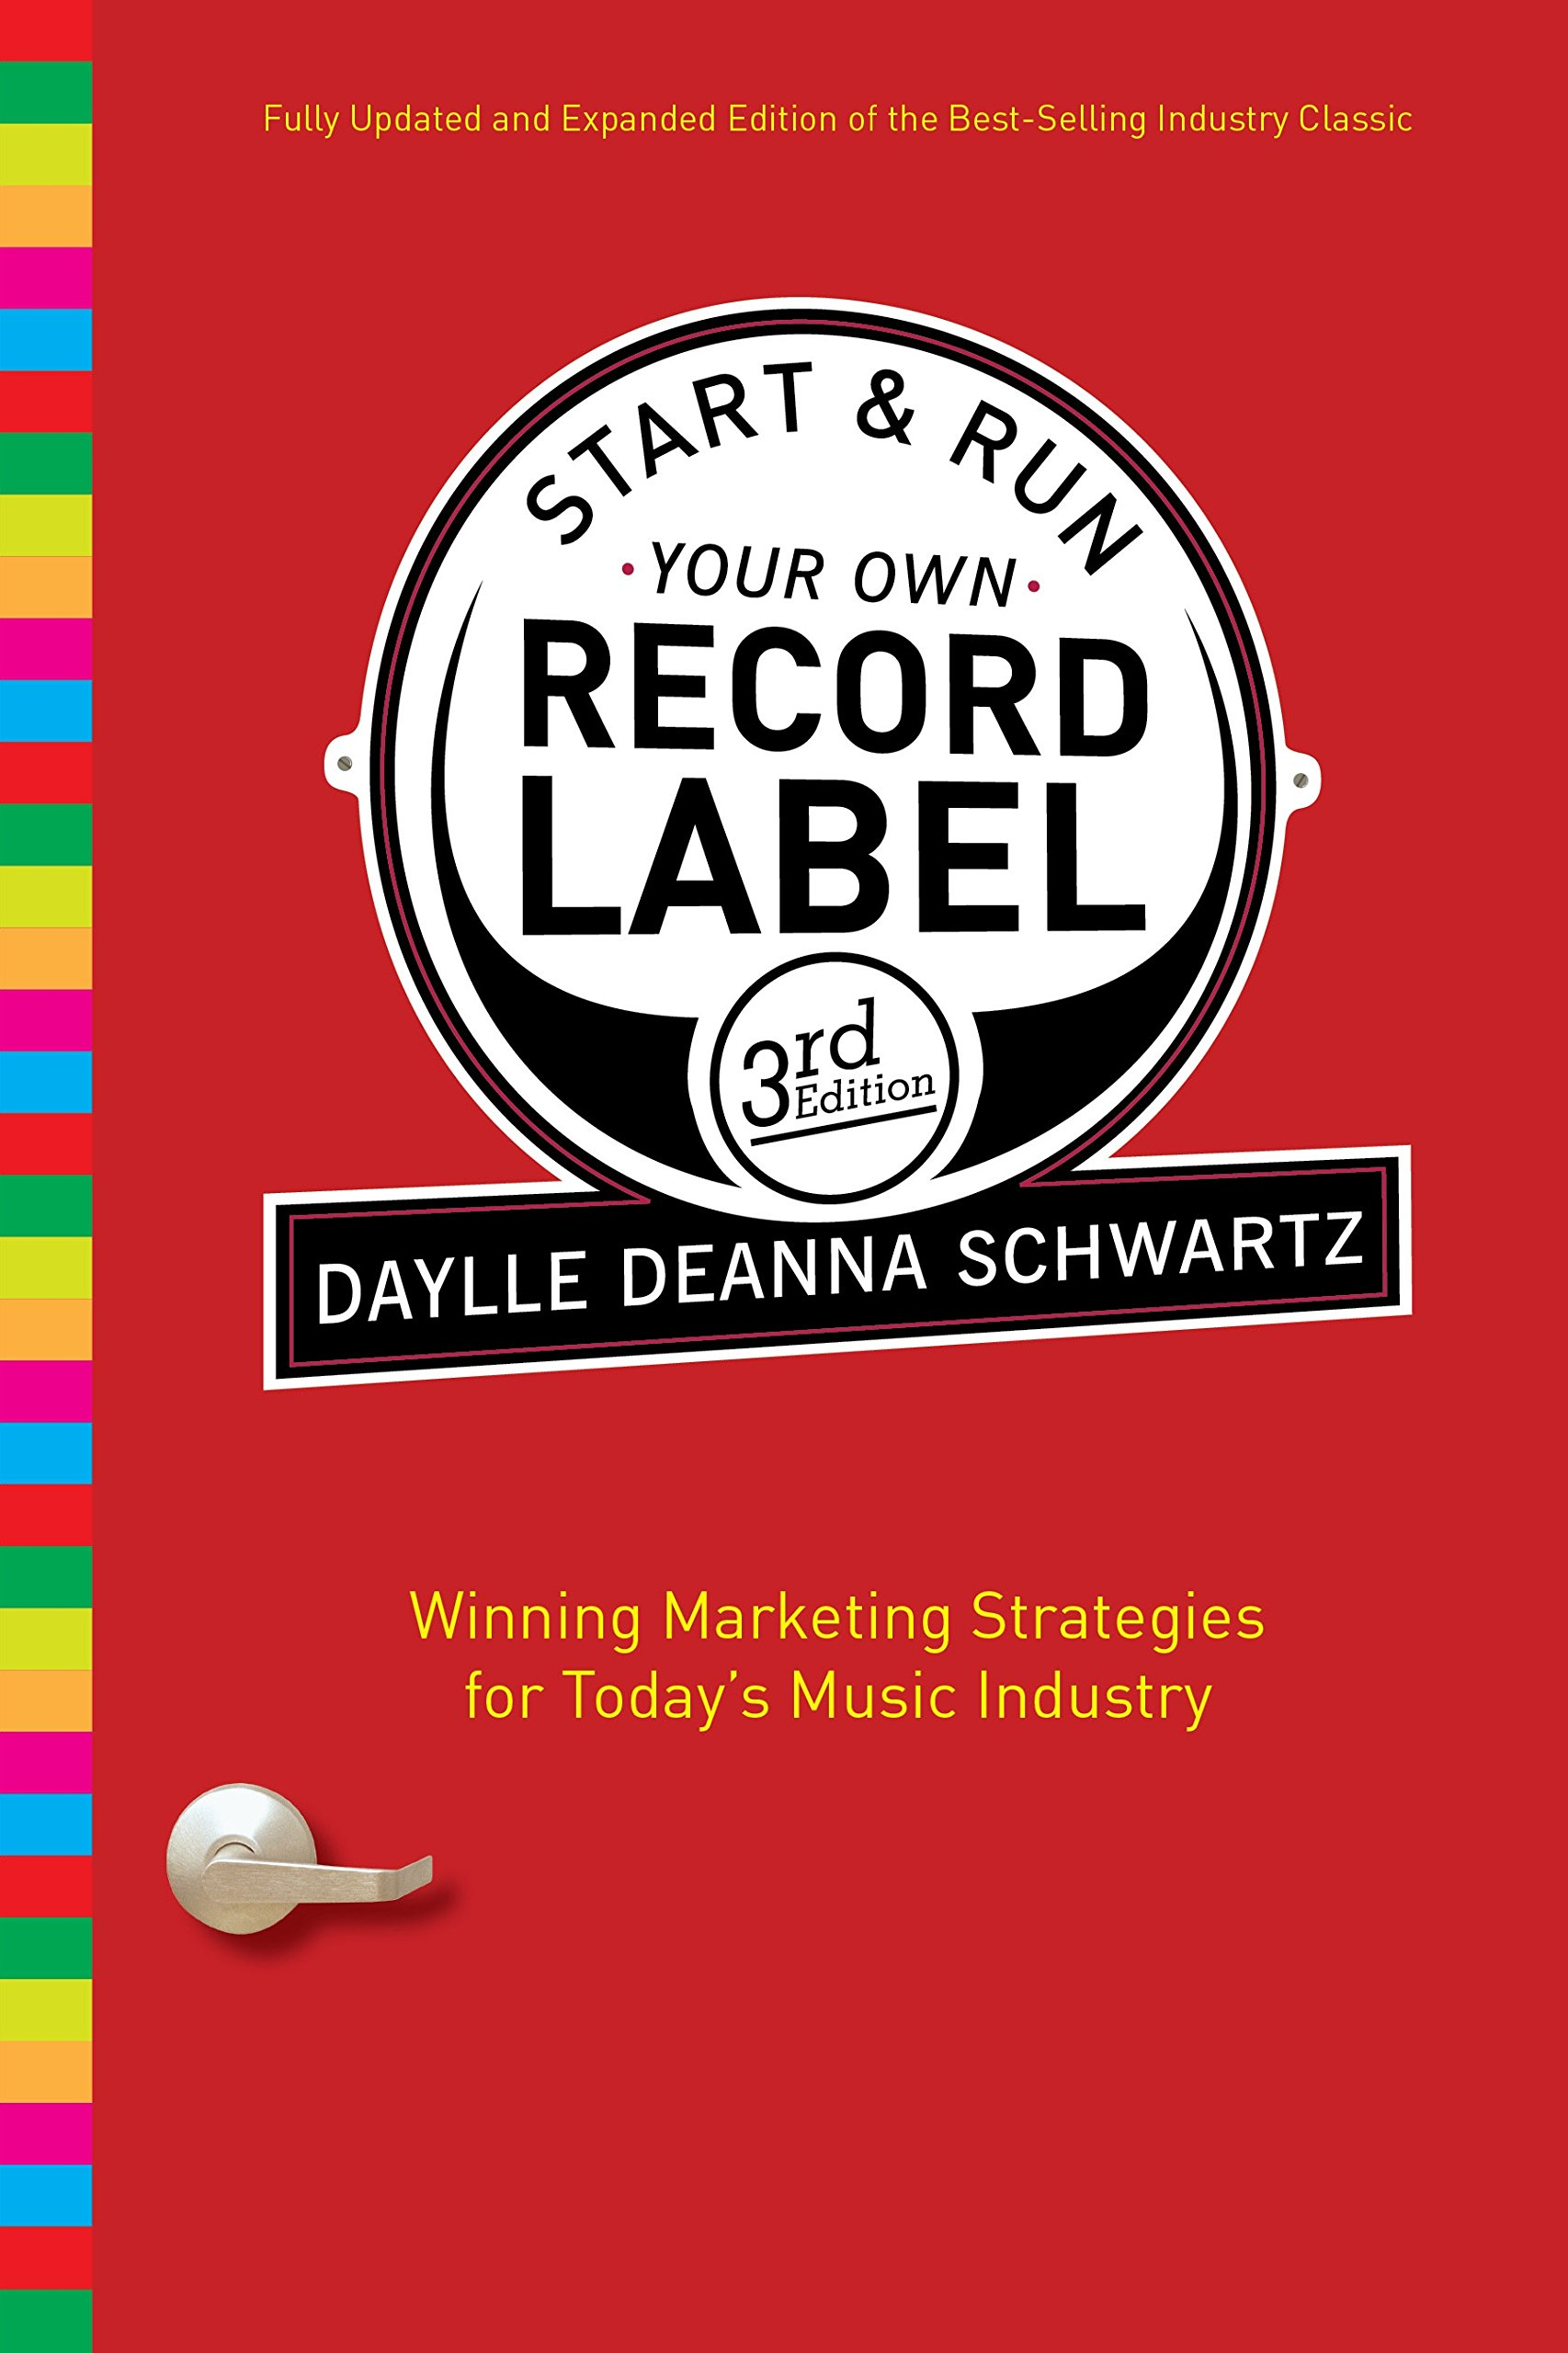 Start and run your own record label third edition winning start and run your own record label third edition winning marketing strategies for todays music industry start run your own record label daylle fandeluxe Image collections